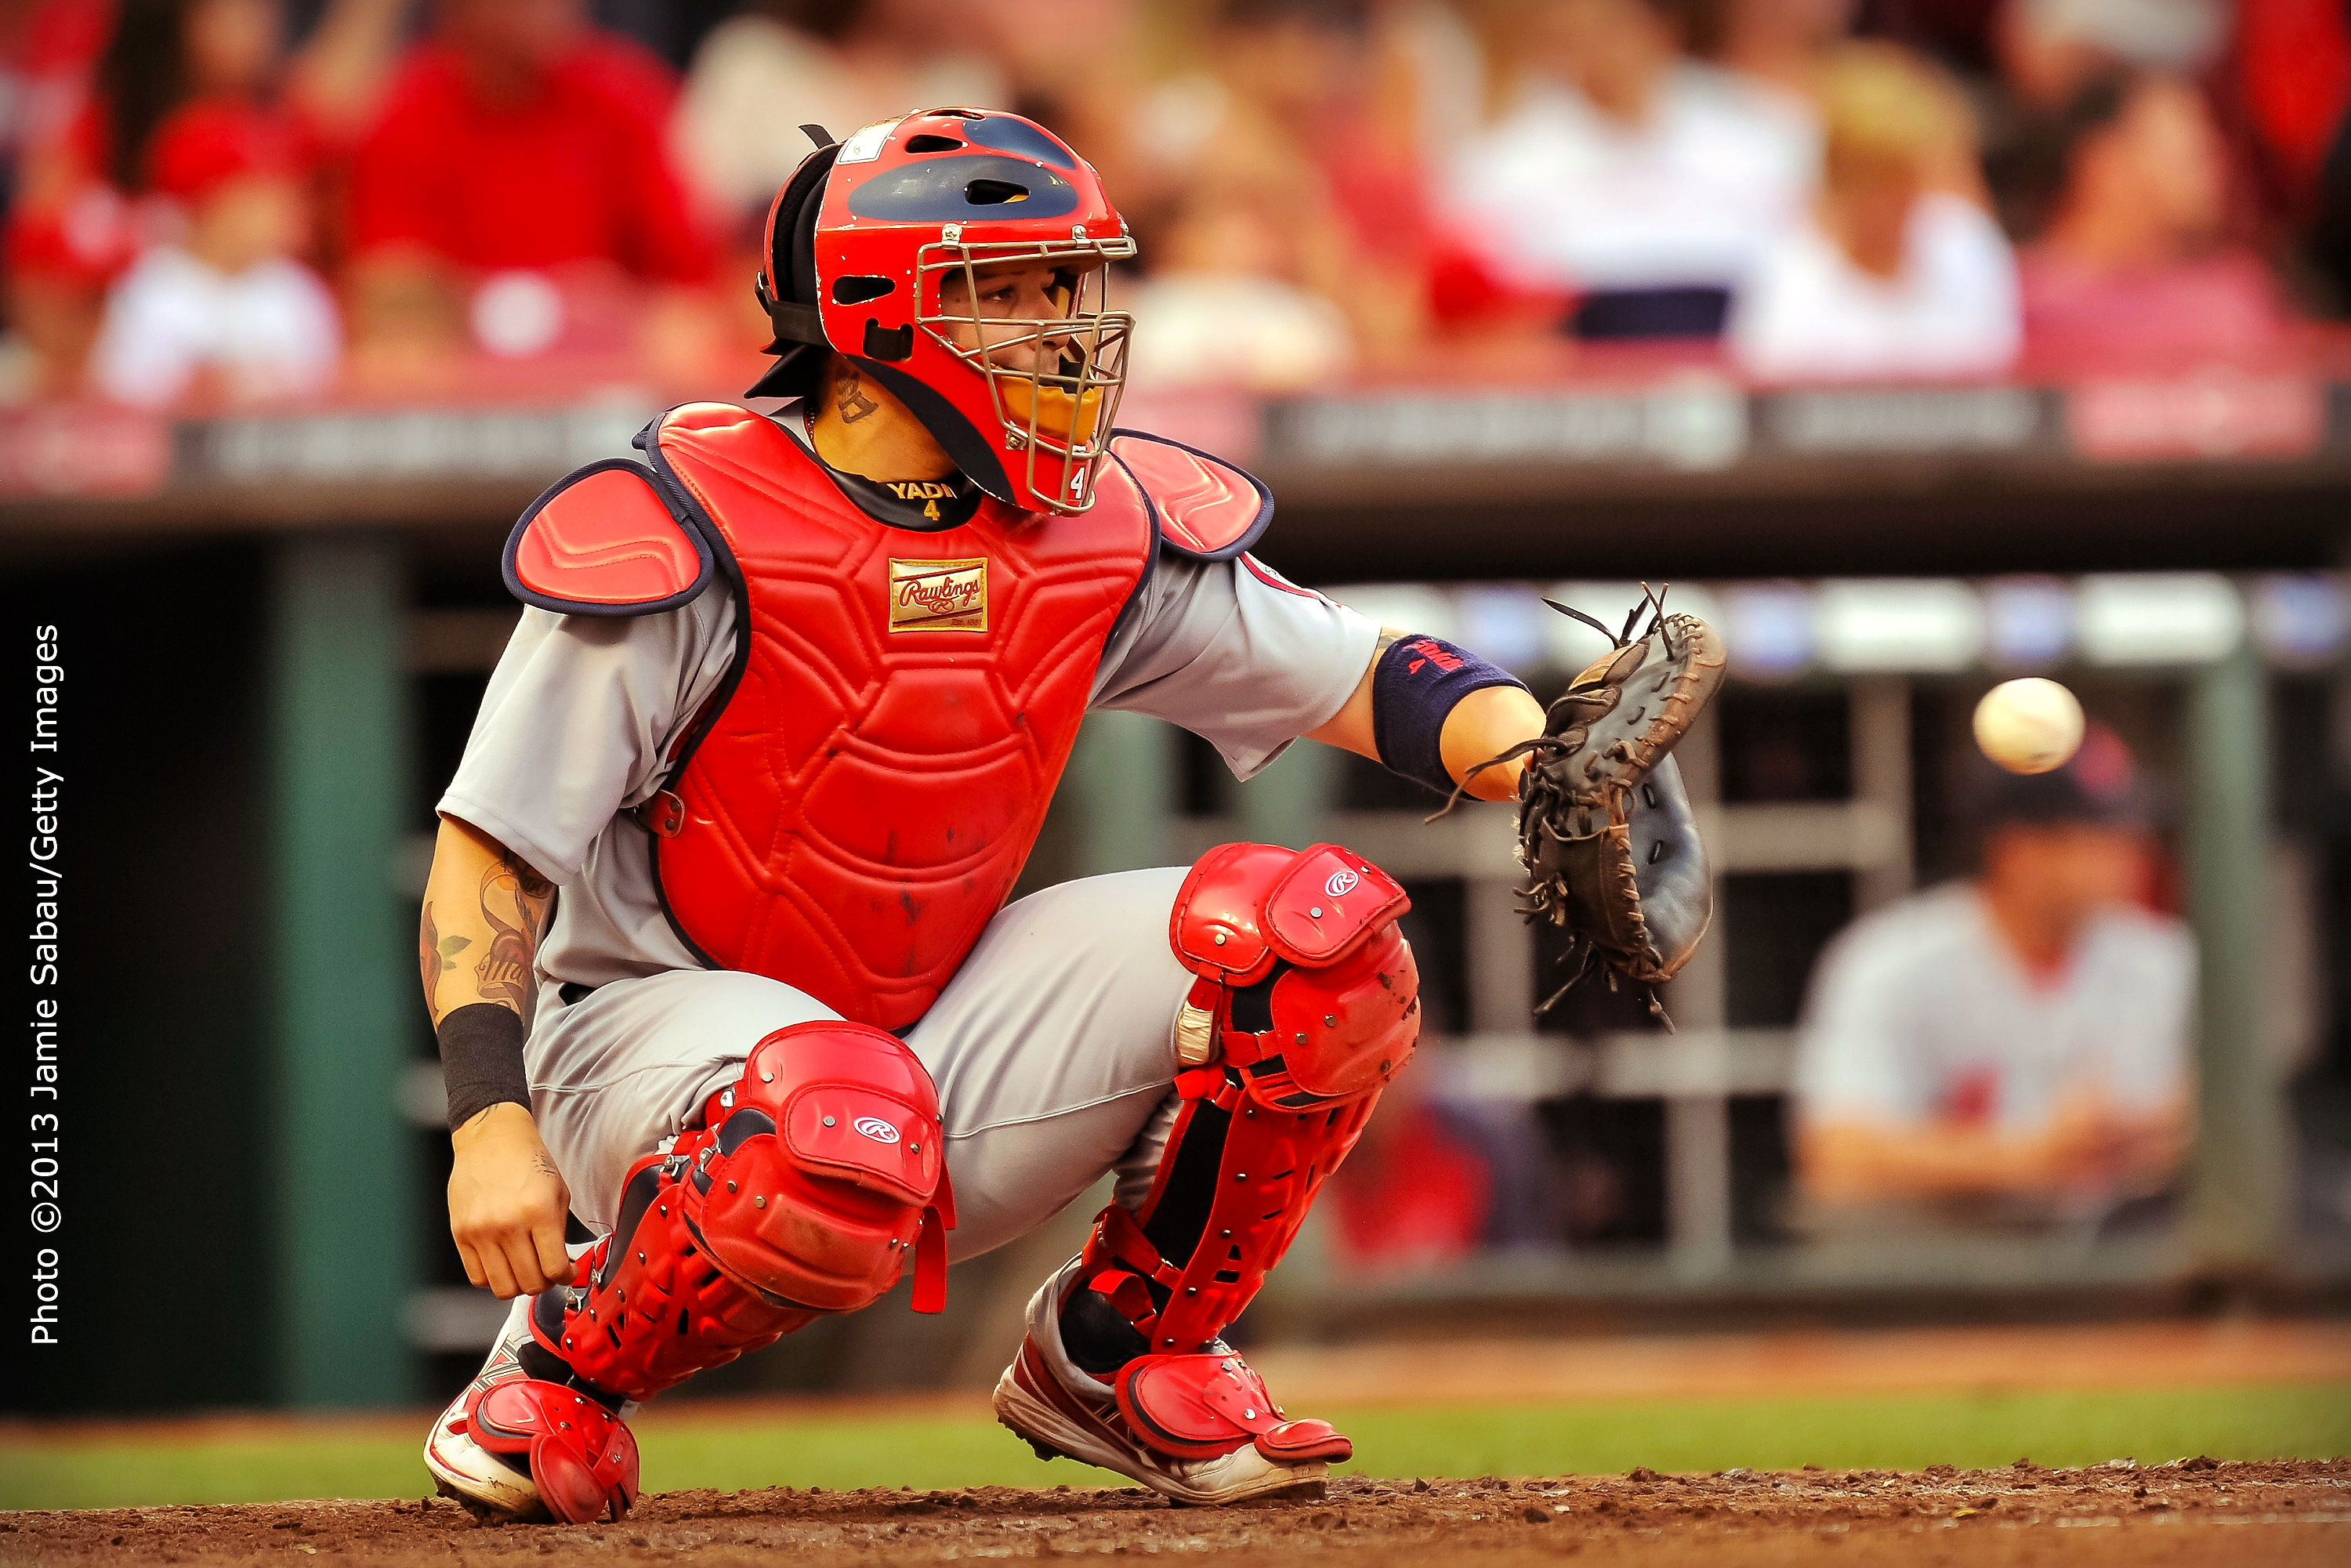 Yadier Molina Catching 2013 Red October Pizza: The...